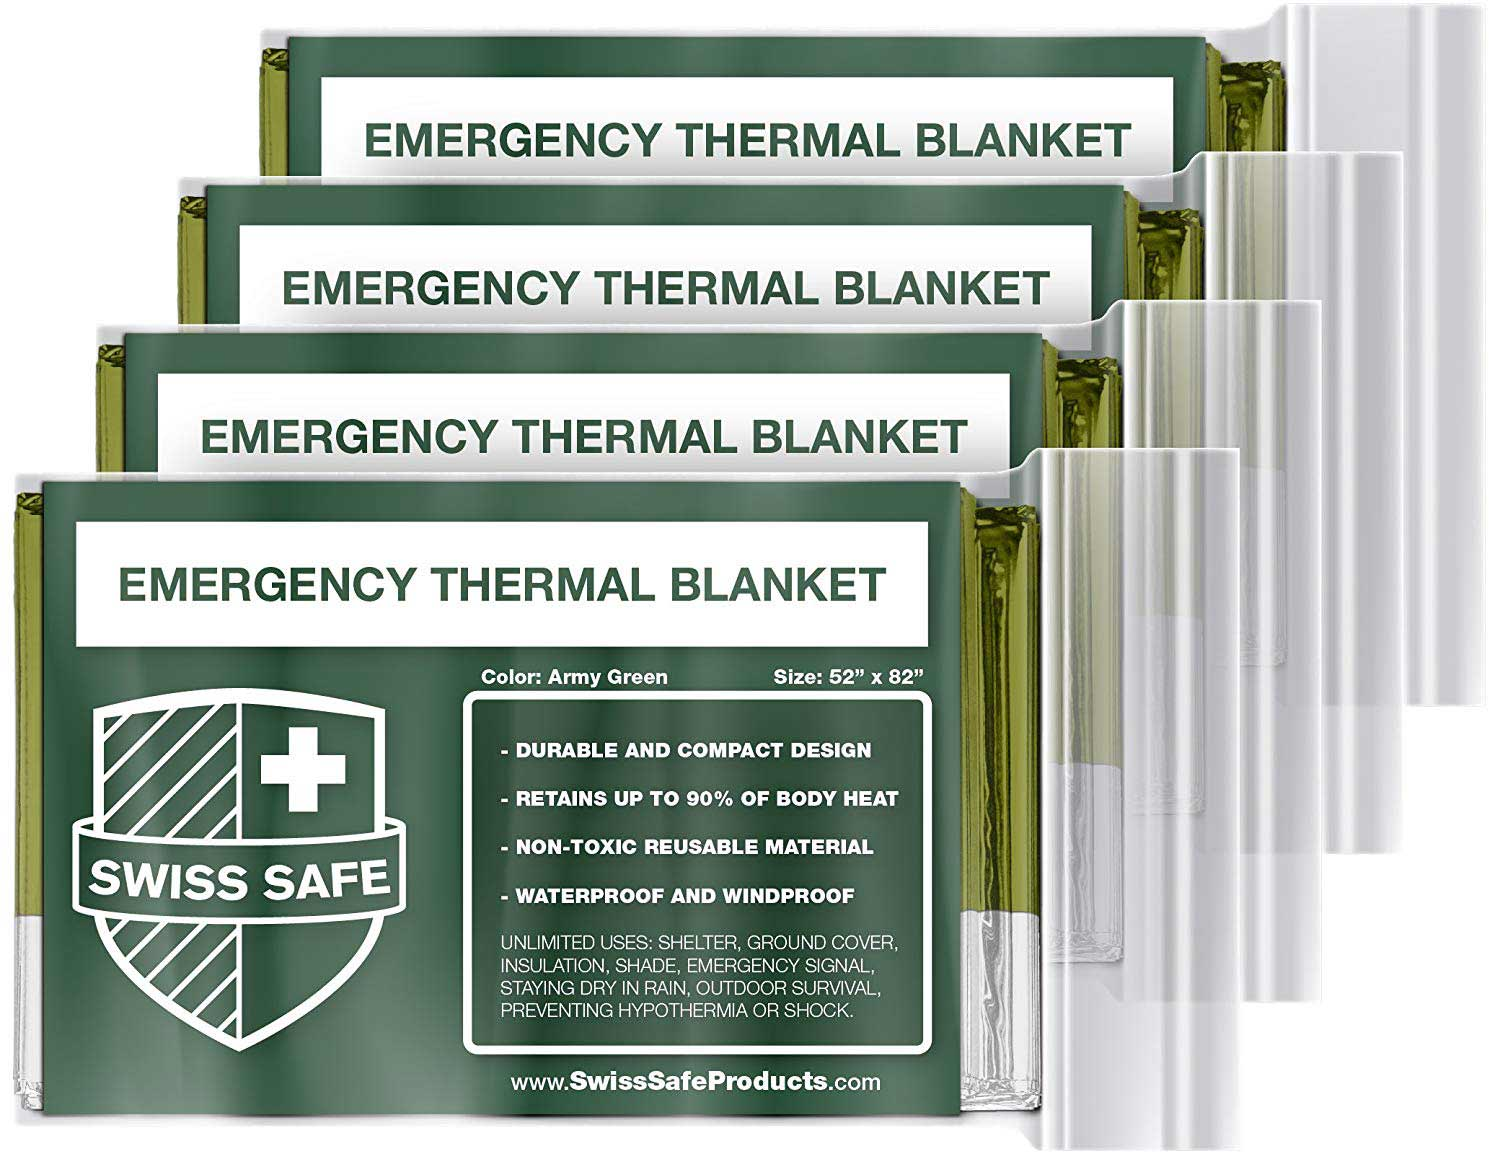 Swiss Safe's mylar-backed thermal blankets